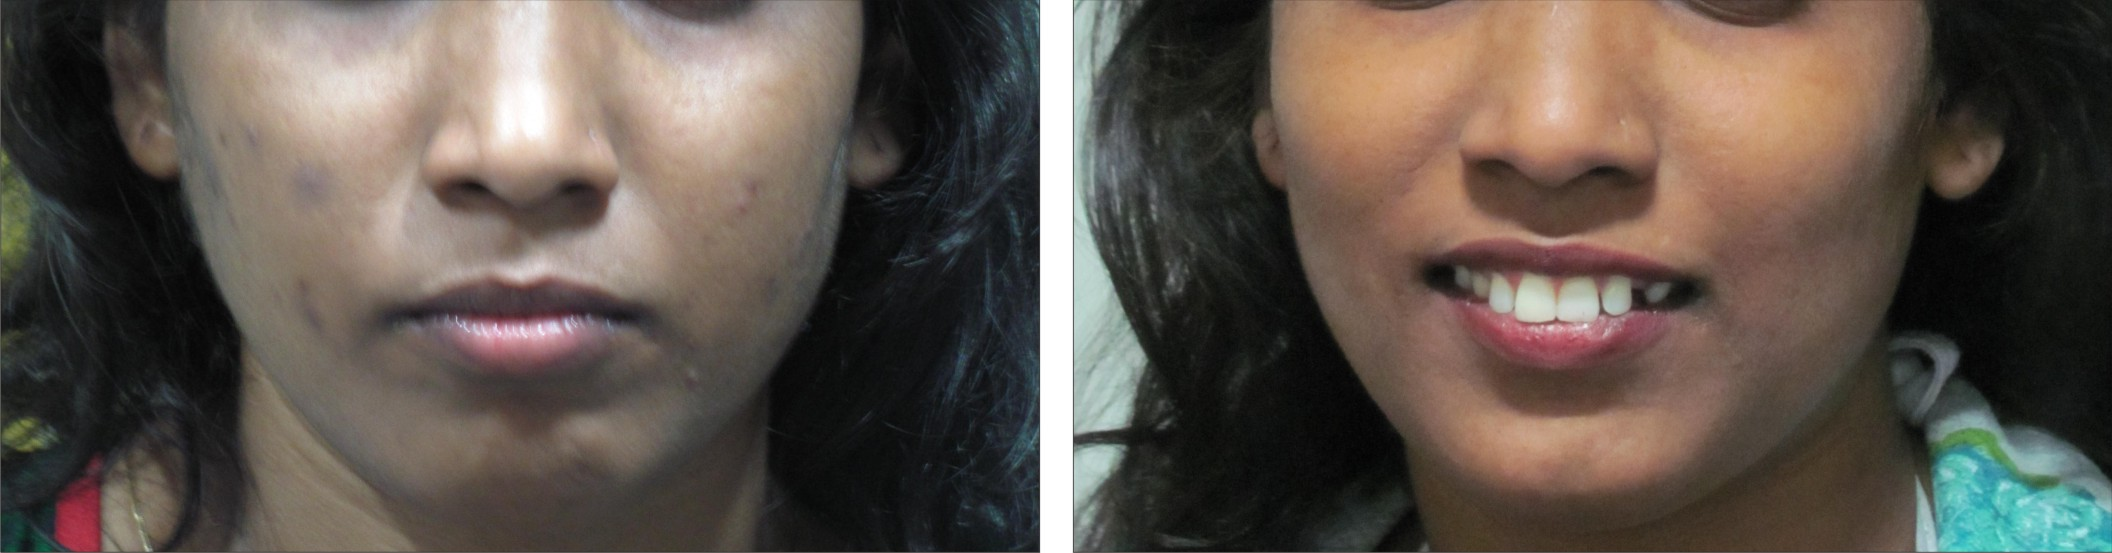 Chemical Peel Image Two